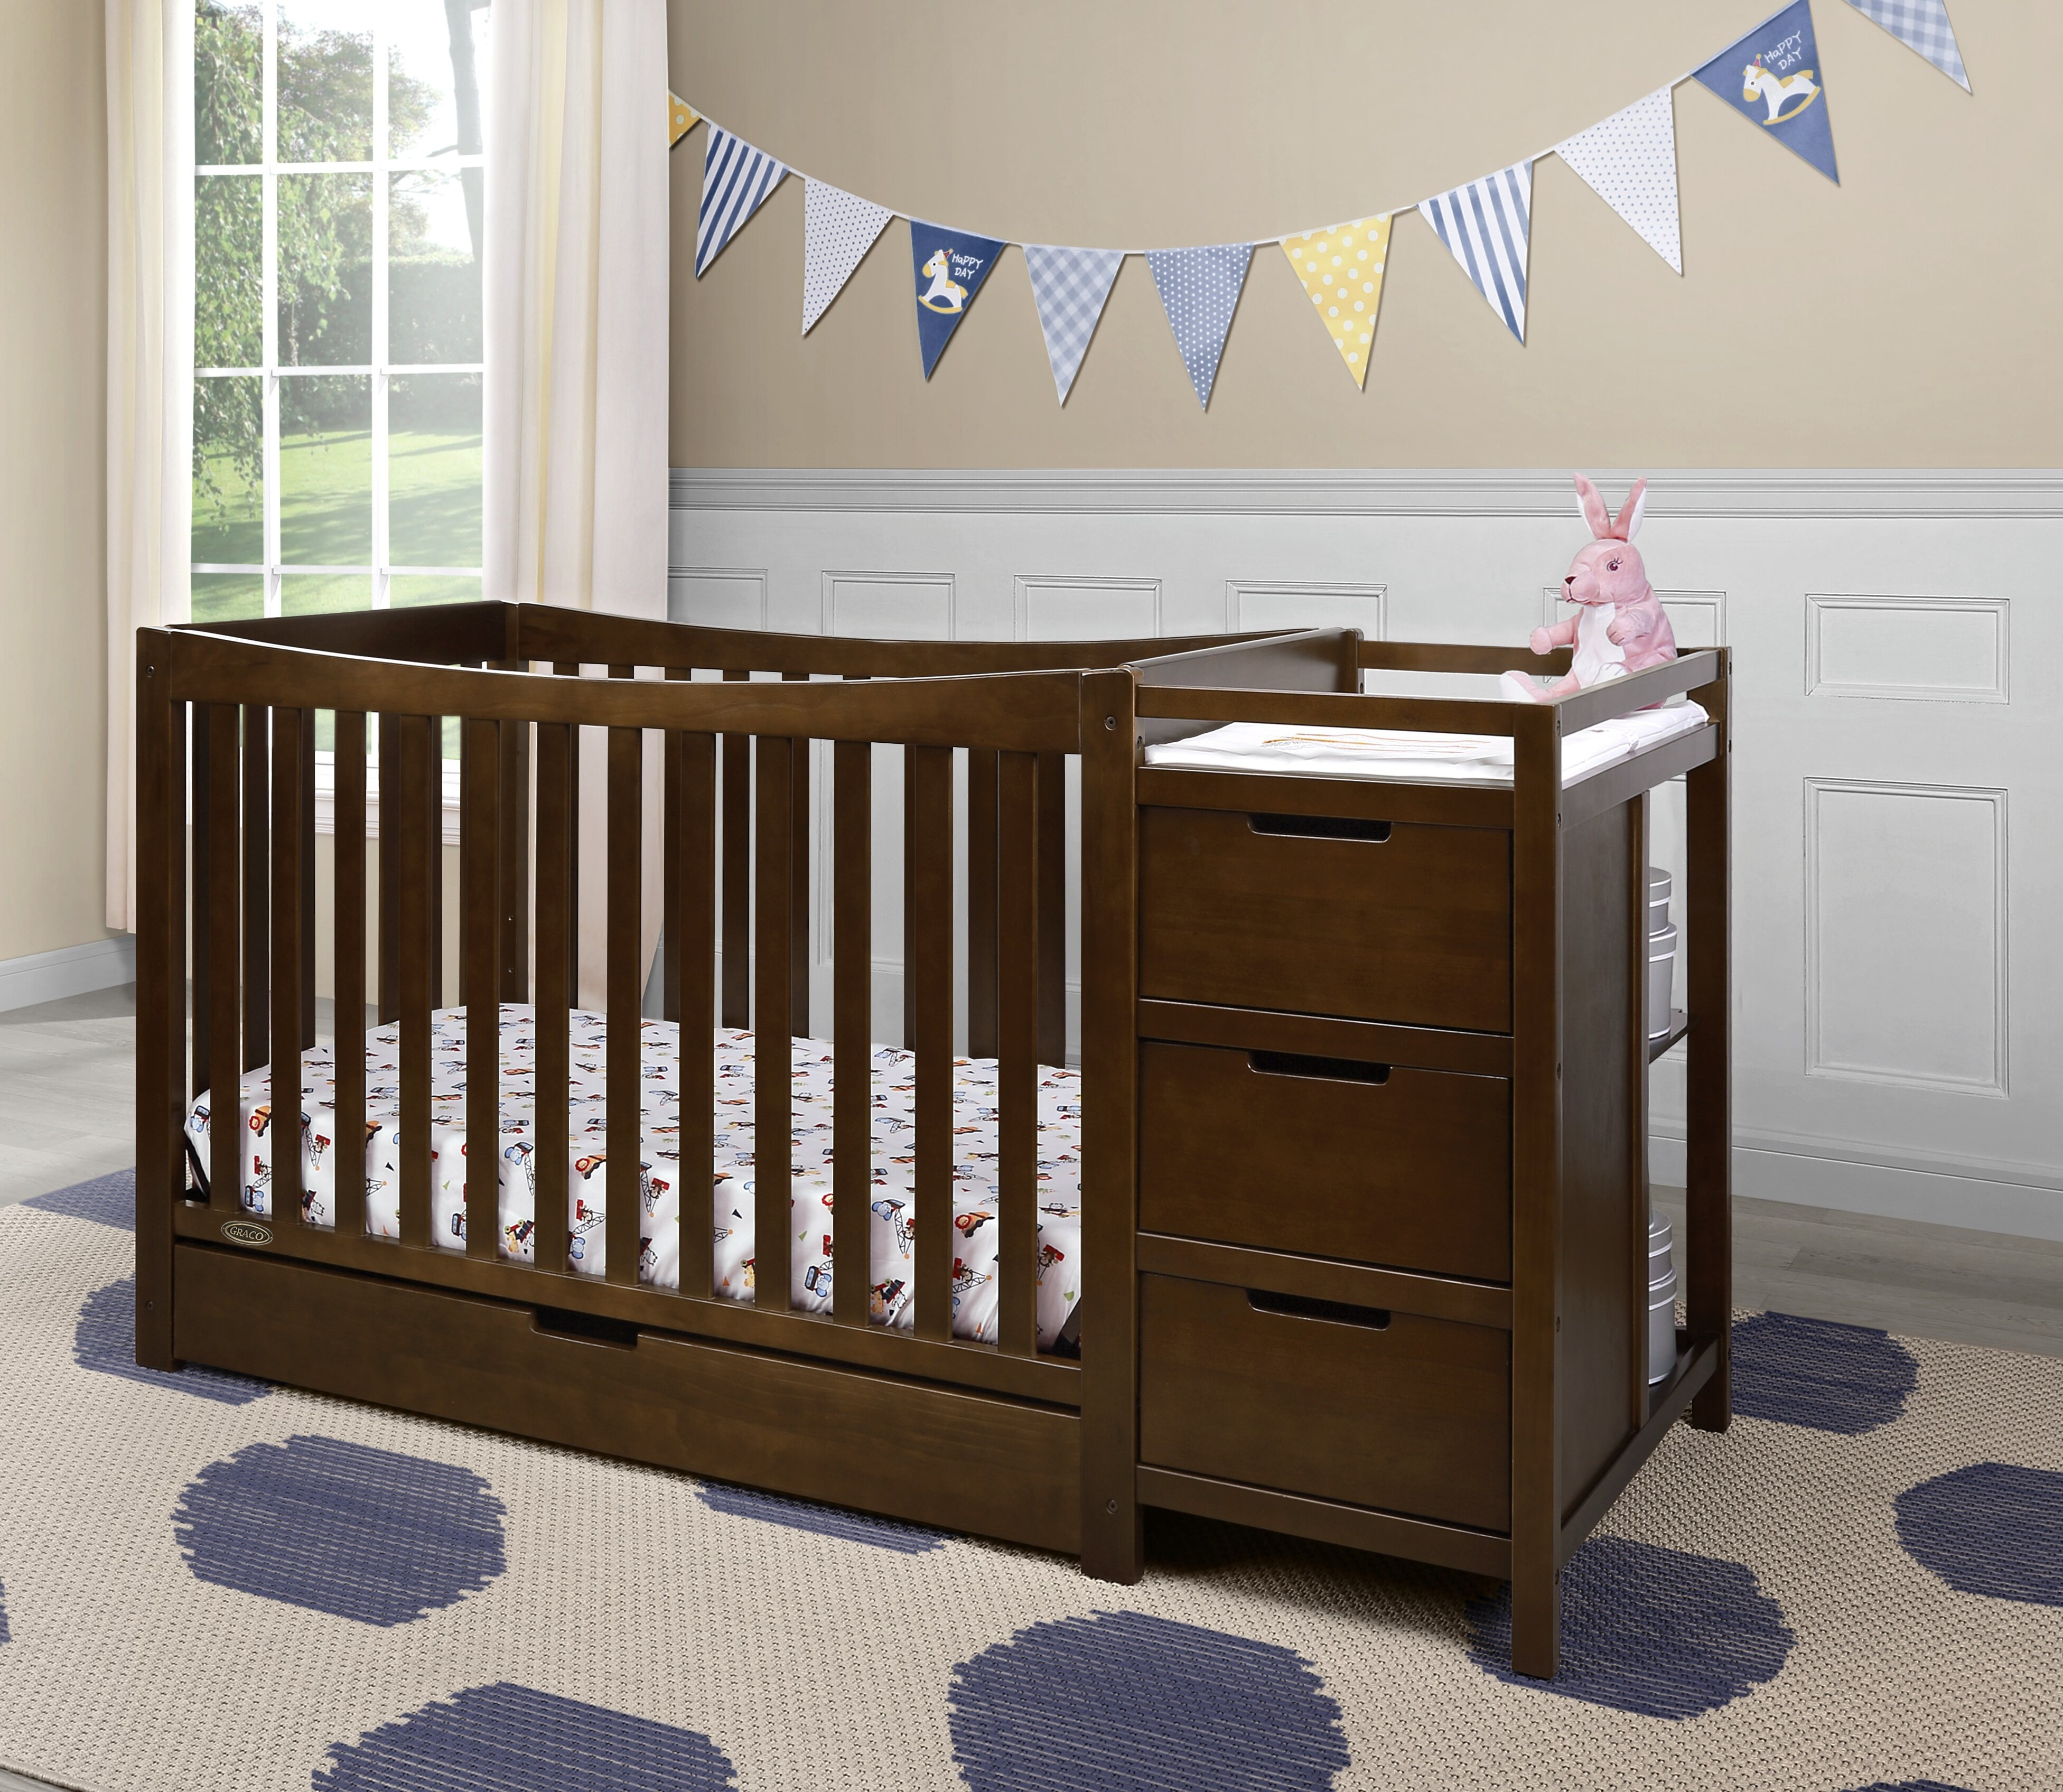 Graco Remi 4 In 1 Convertible Crib And Changer With Storage Reviews Wayfair